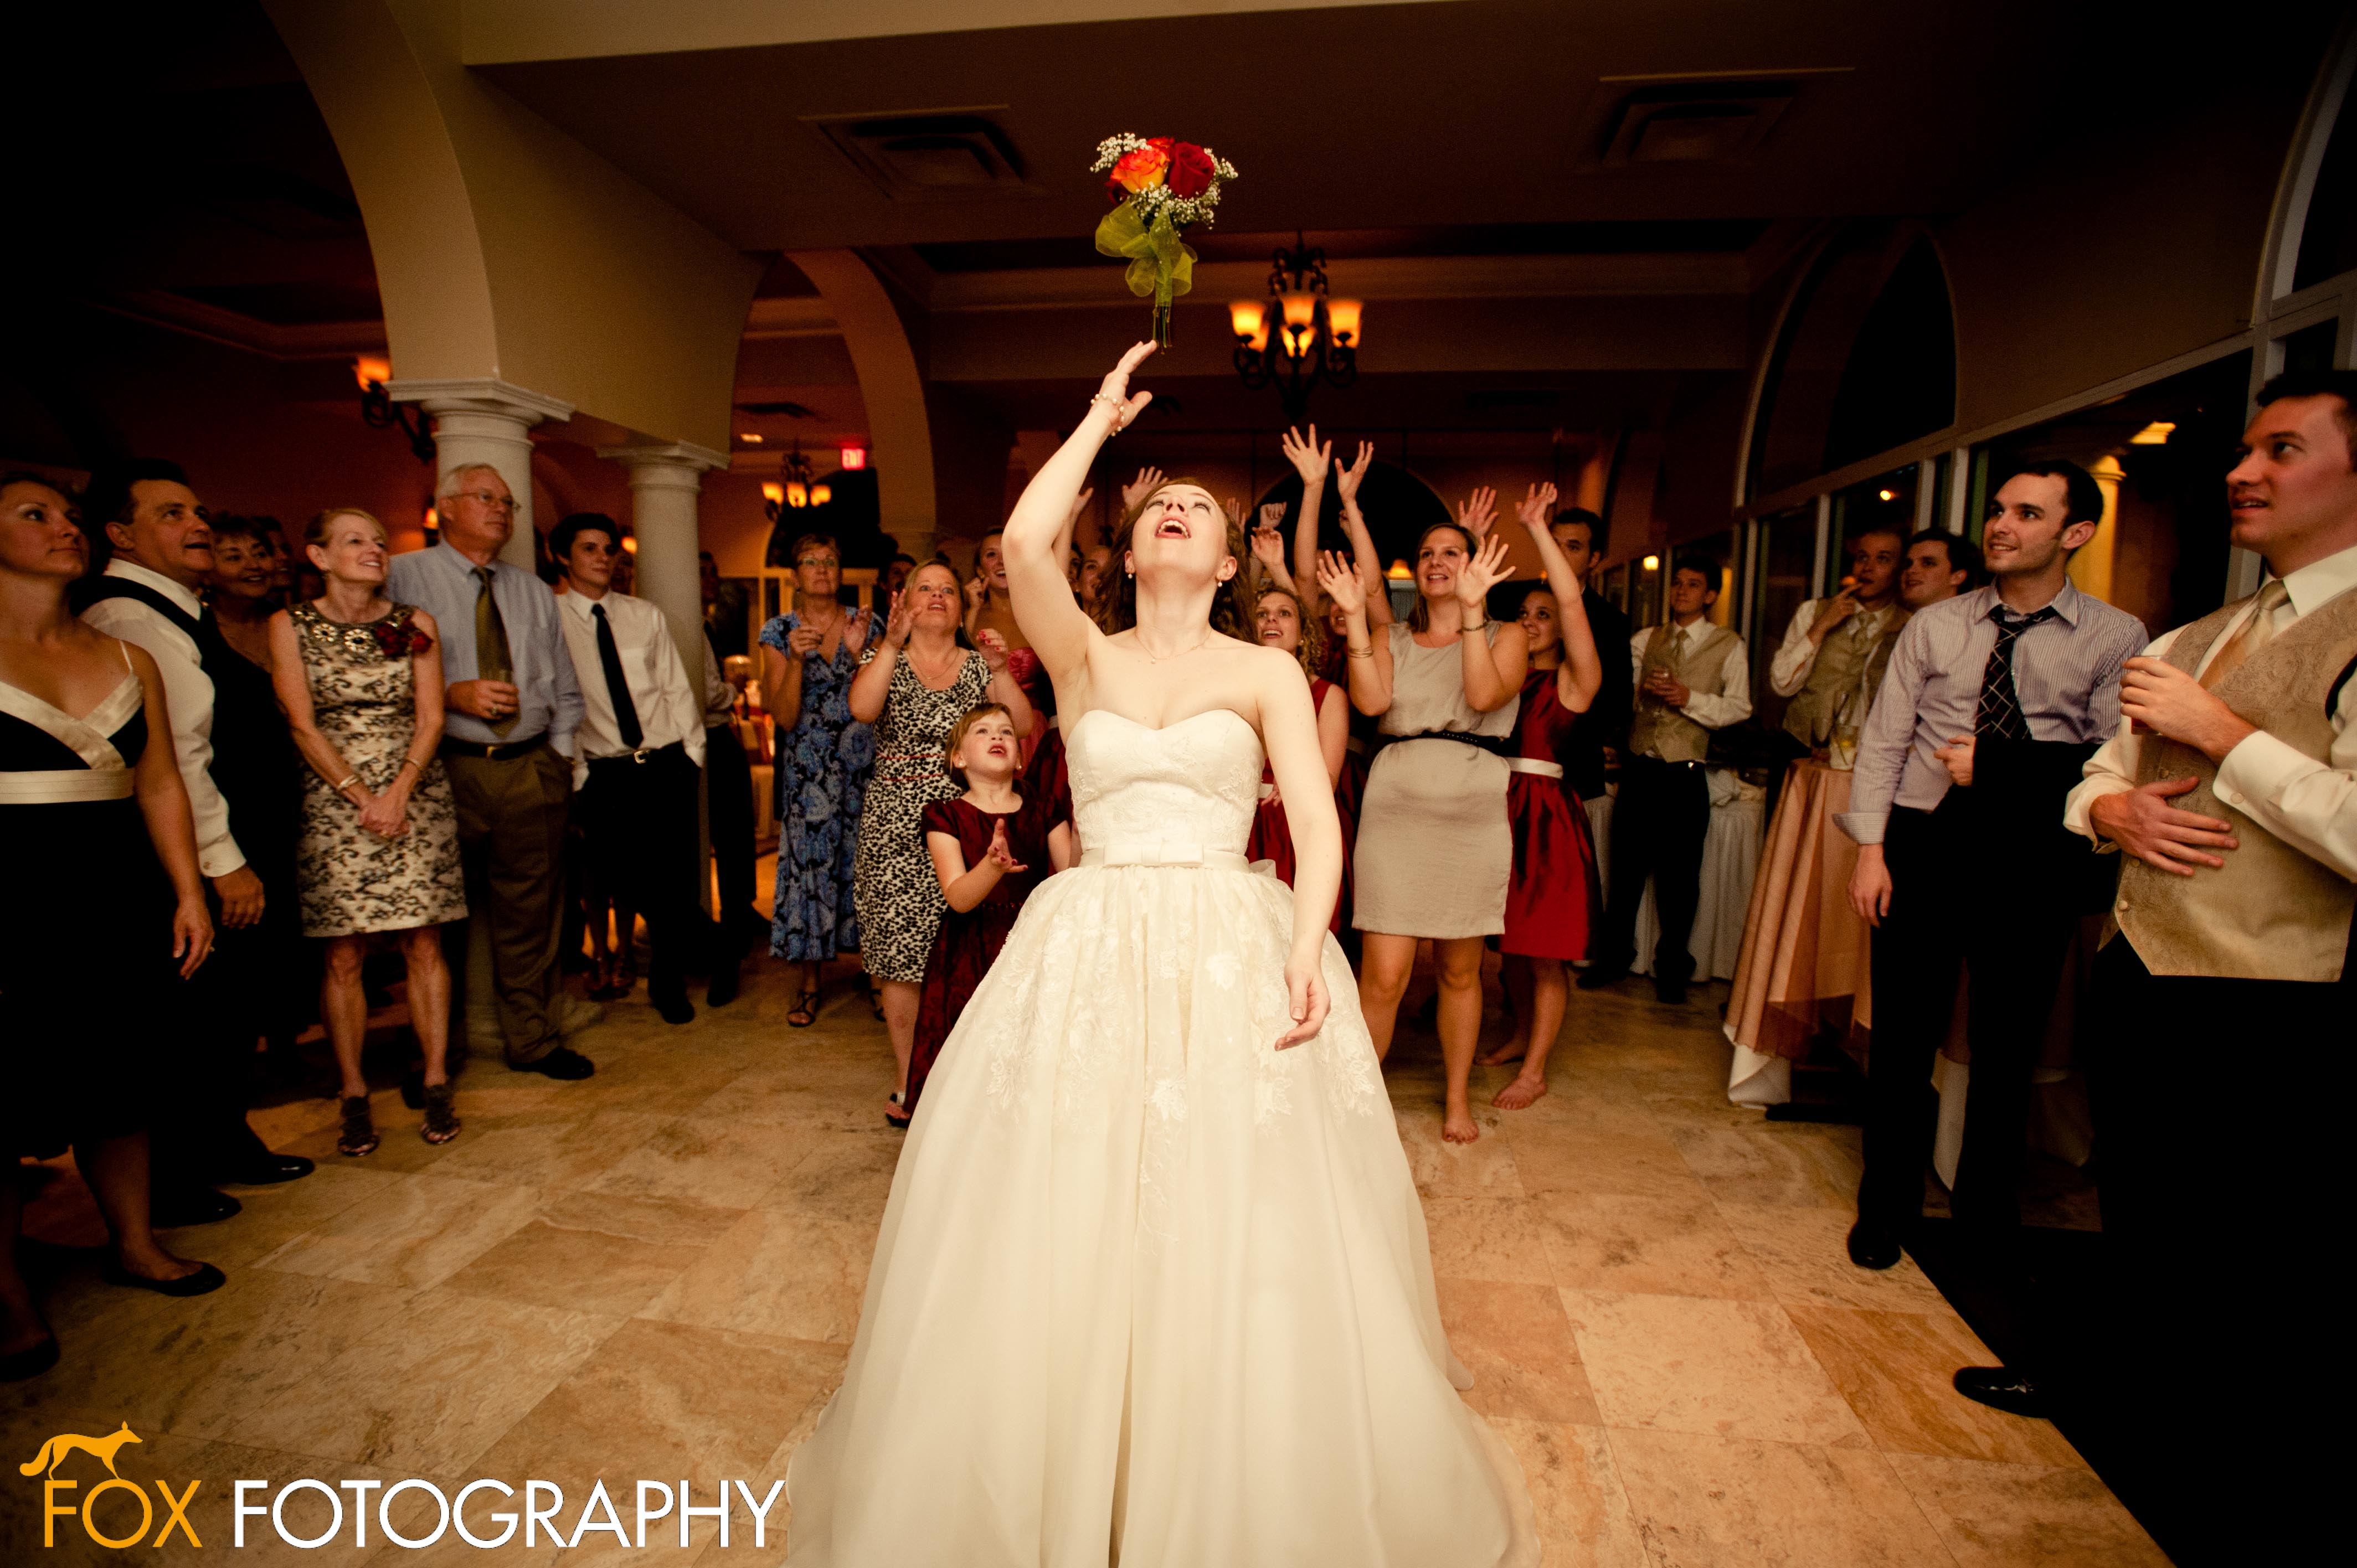 Bridal Bouquet Throwing : Wedding traditions explained bouquet toss